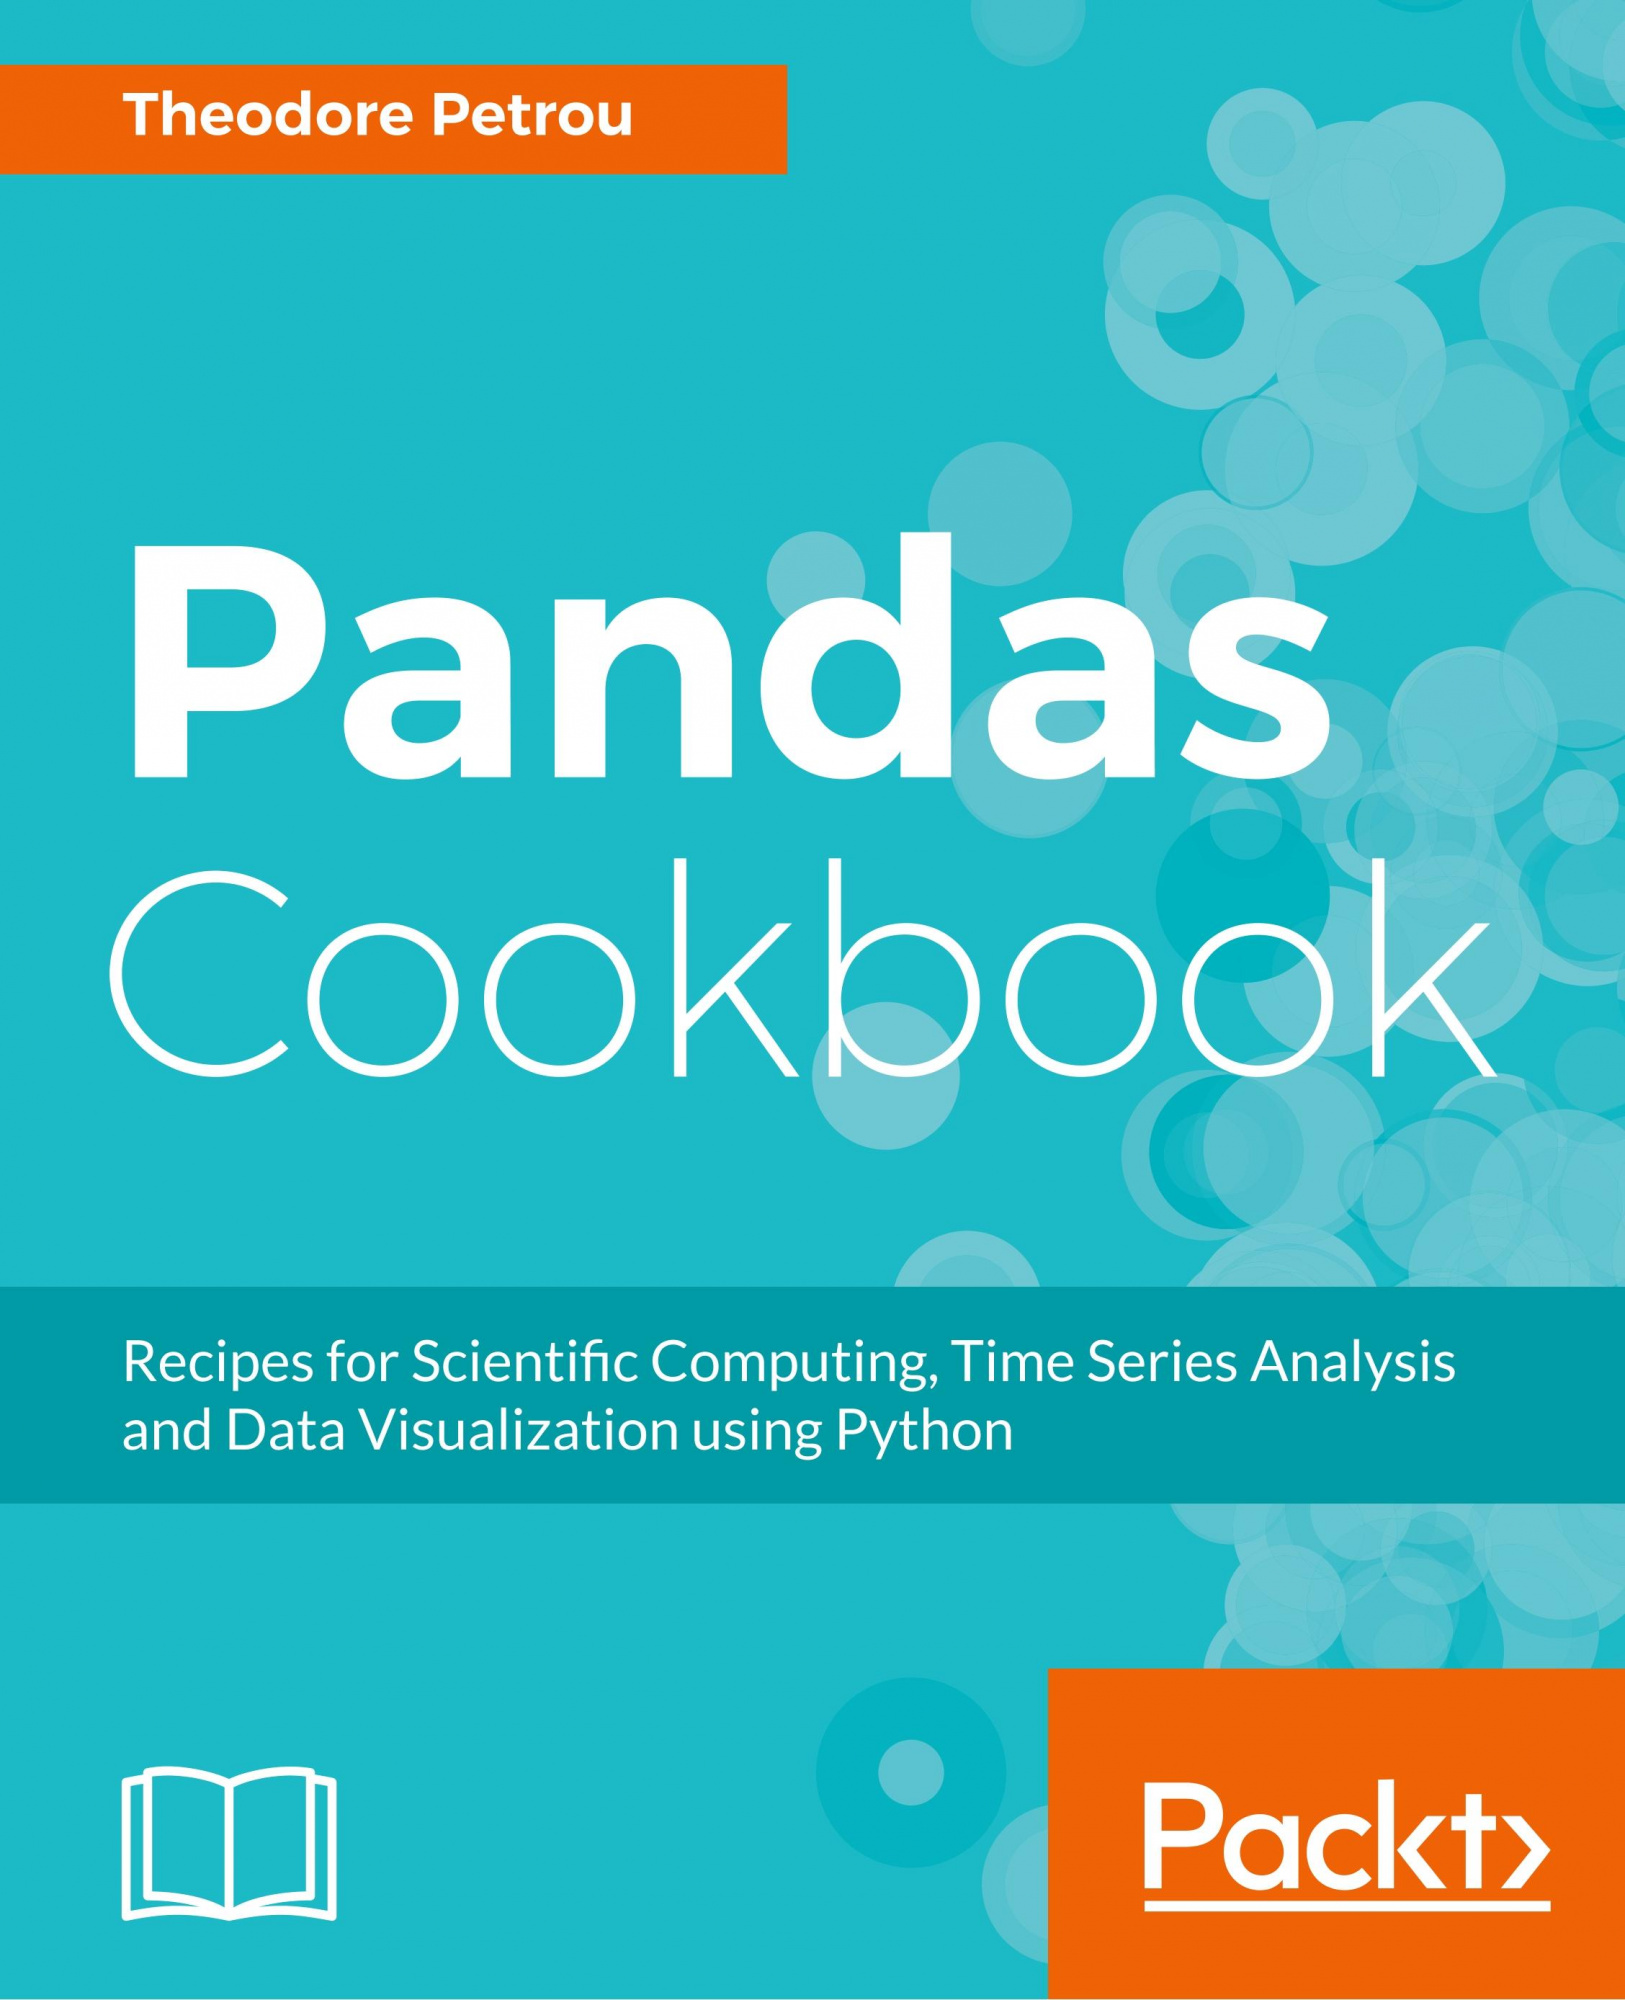 Pandas Cookbook: Recipes for Scientific Computing, Time Series Analysis and Data Visualization using Python by Theodore Petrou, ISBN: 9781784393878